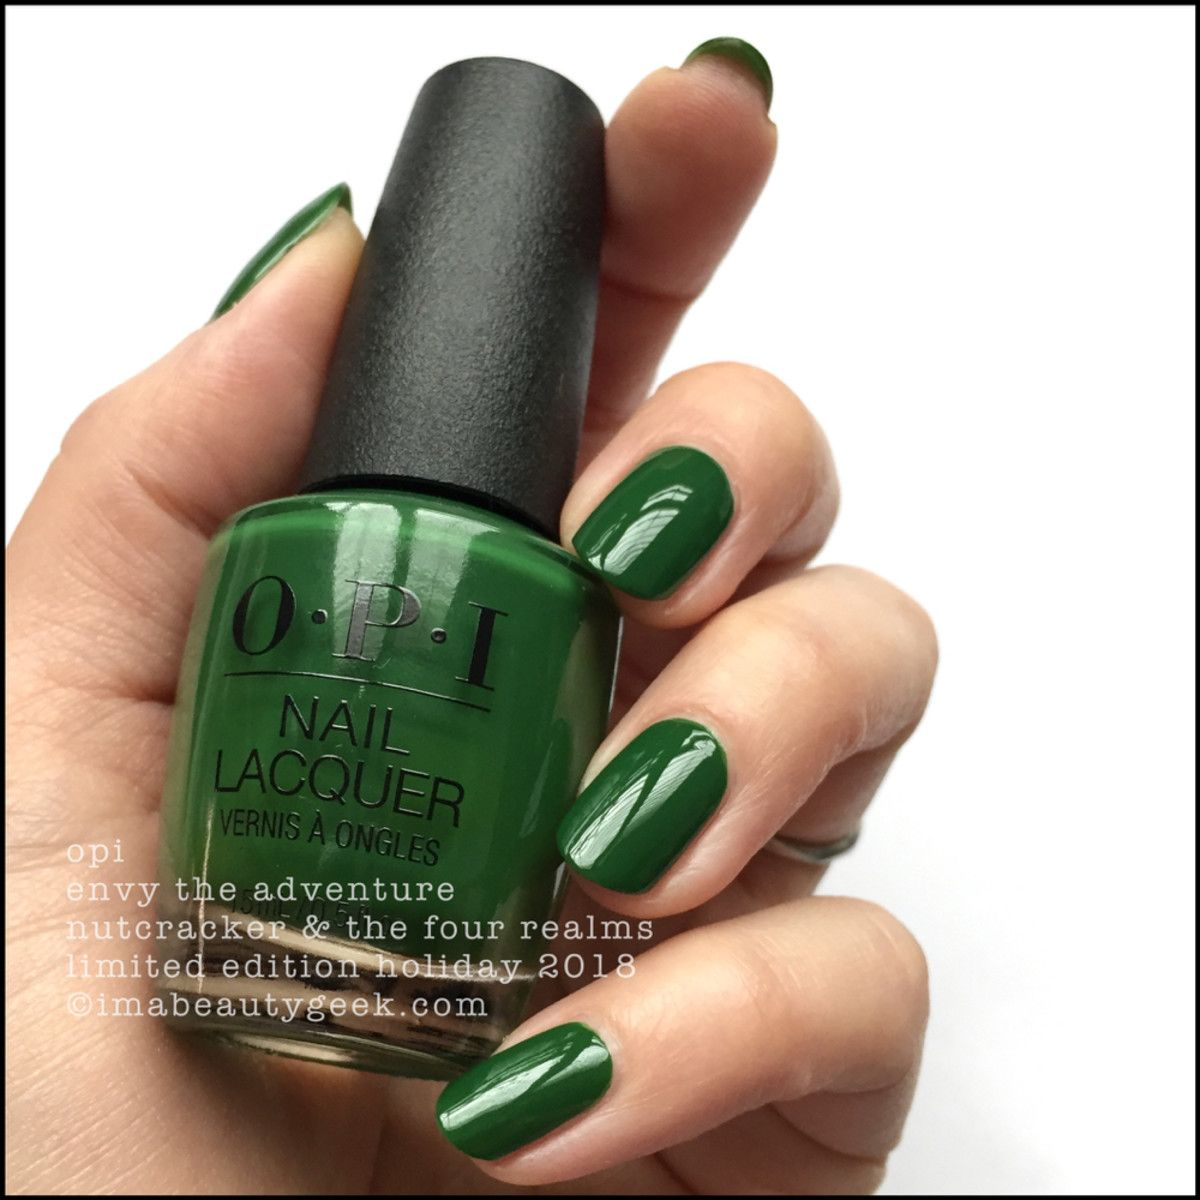 Opi The Nutcracker And The Four Realms Opi Nutcracker And The Four Realms Collection Luxury Nails Green Nails Trendy Nails